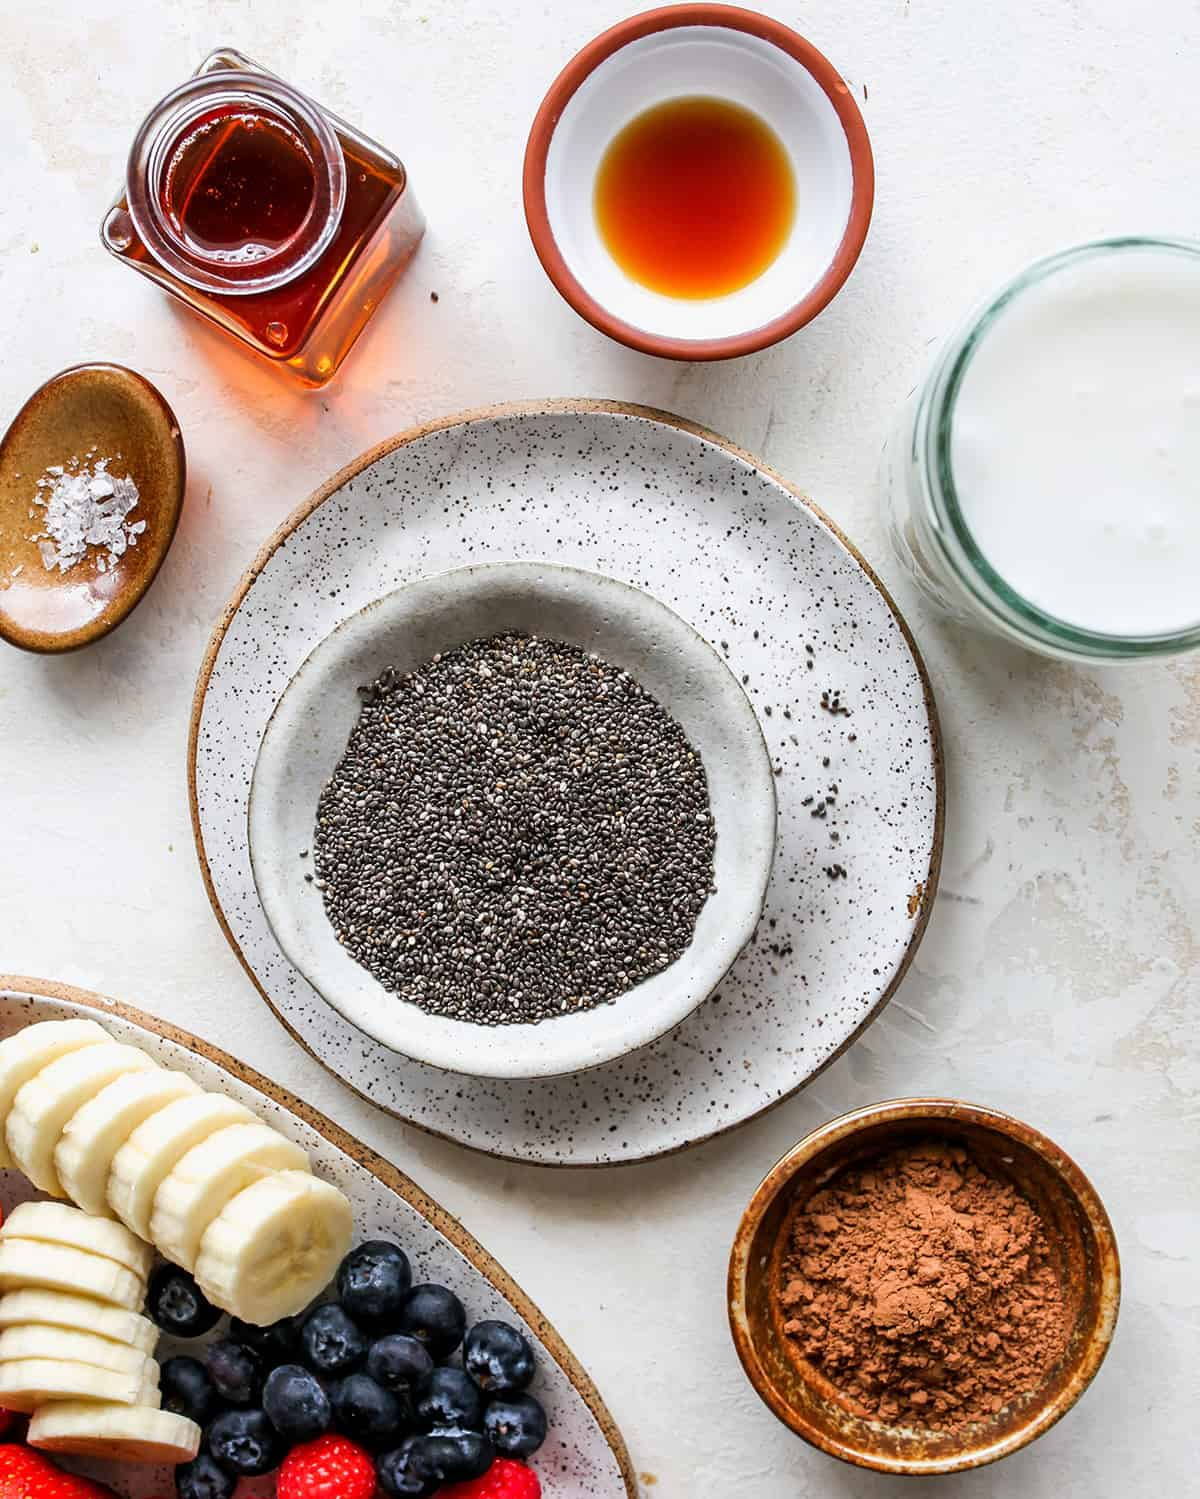 ingredients in this Chocolate Chia Pudding Recipe